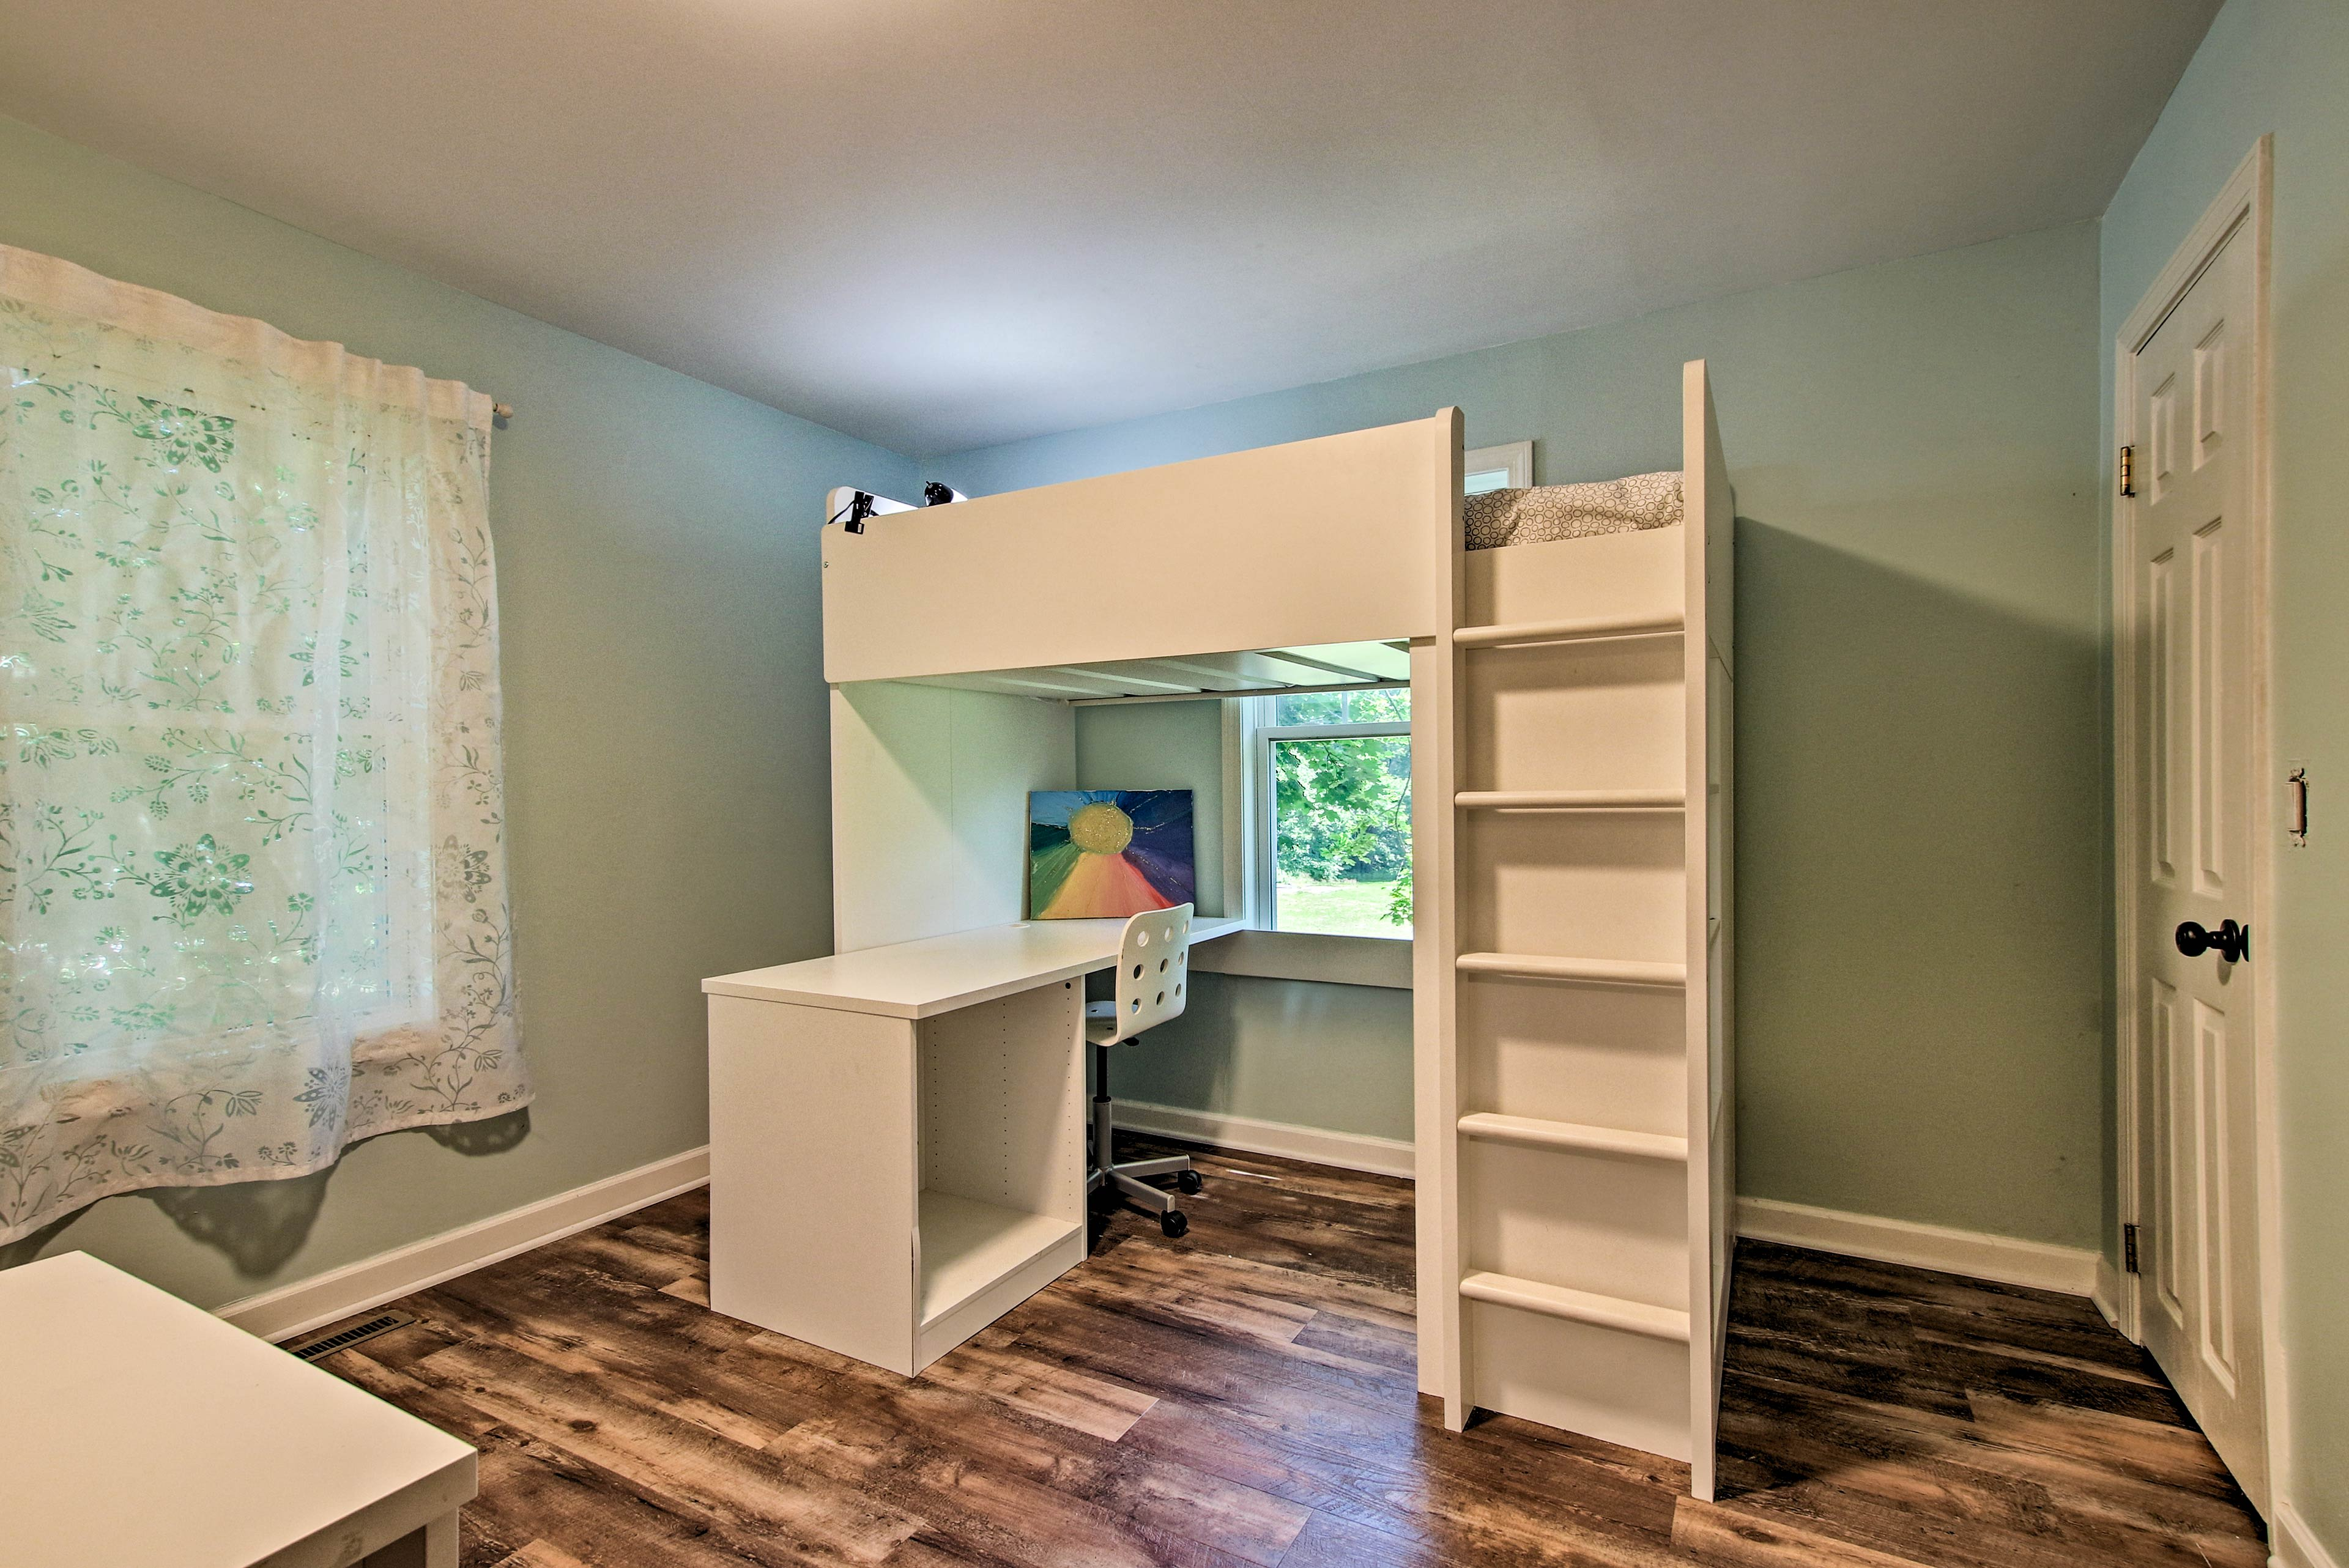 Let the kids take over this fun bedroom 3!